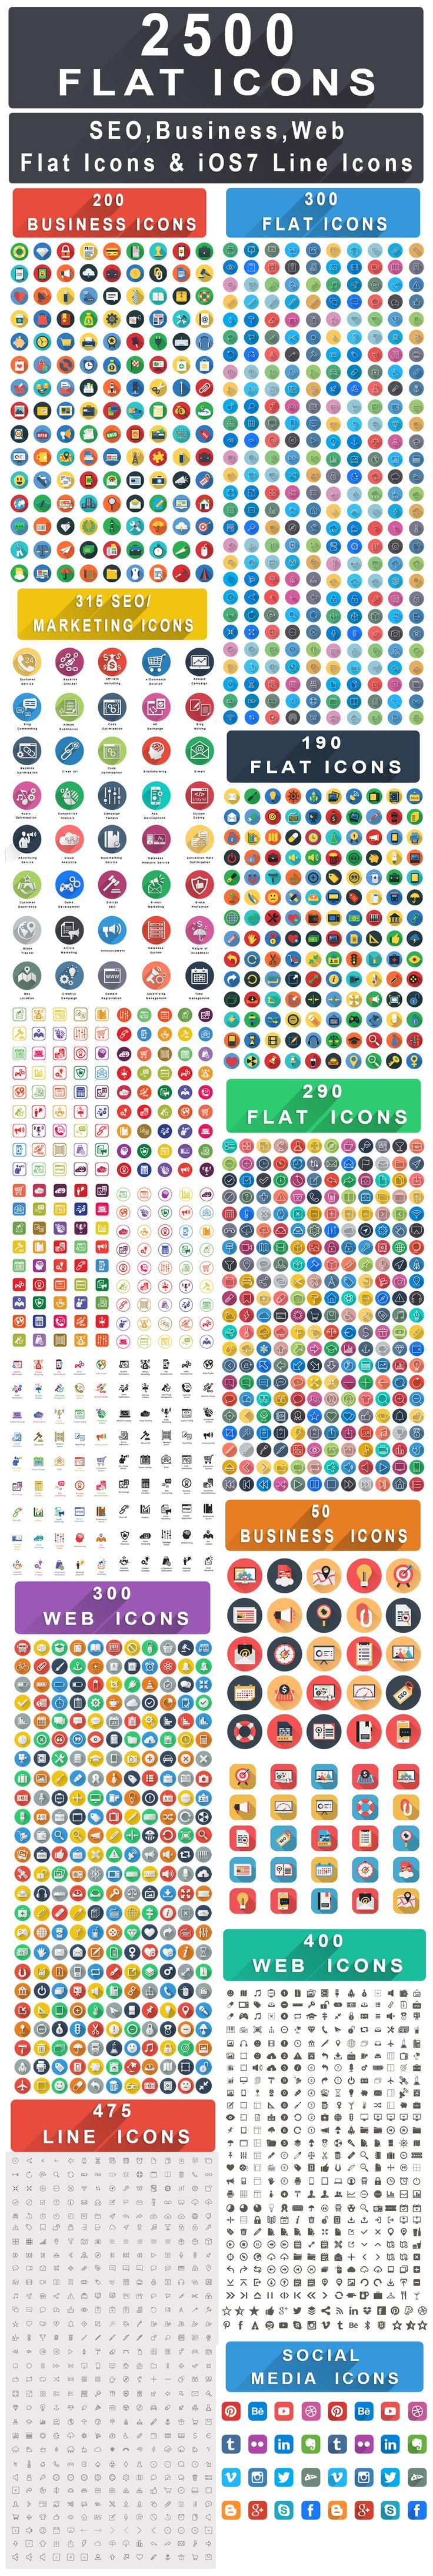 2500+ Flat Icons Bundle: Seo Icons, Business - Financial, Web - Marketing and iOS8 Icons